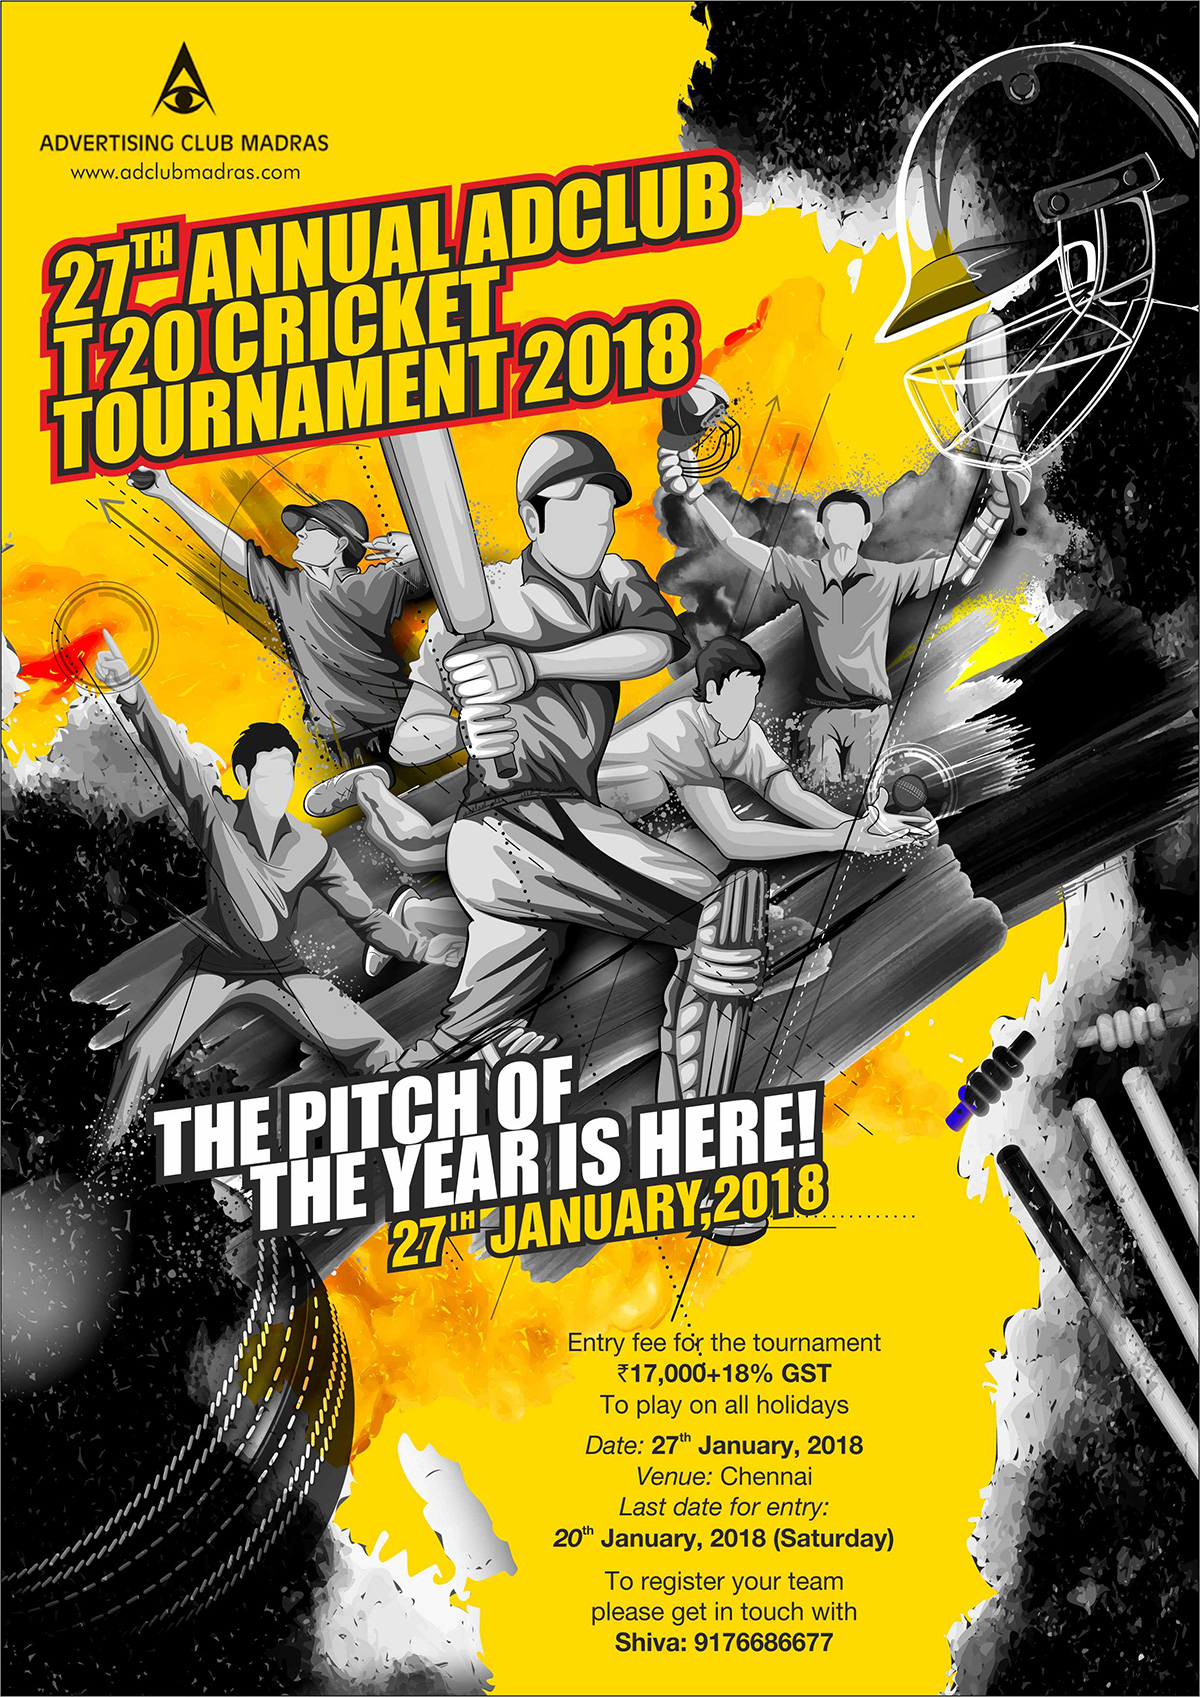 27th Annual Adclub T20 Cricket Tournament 2018